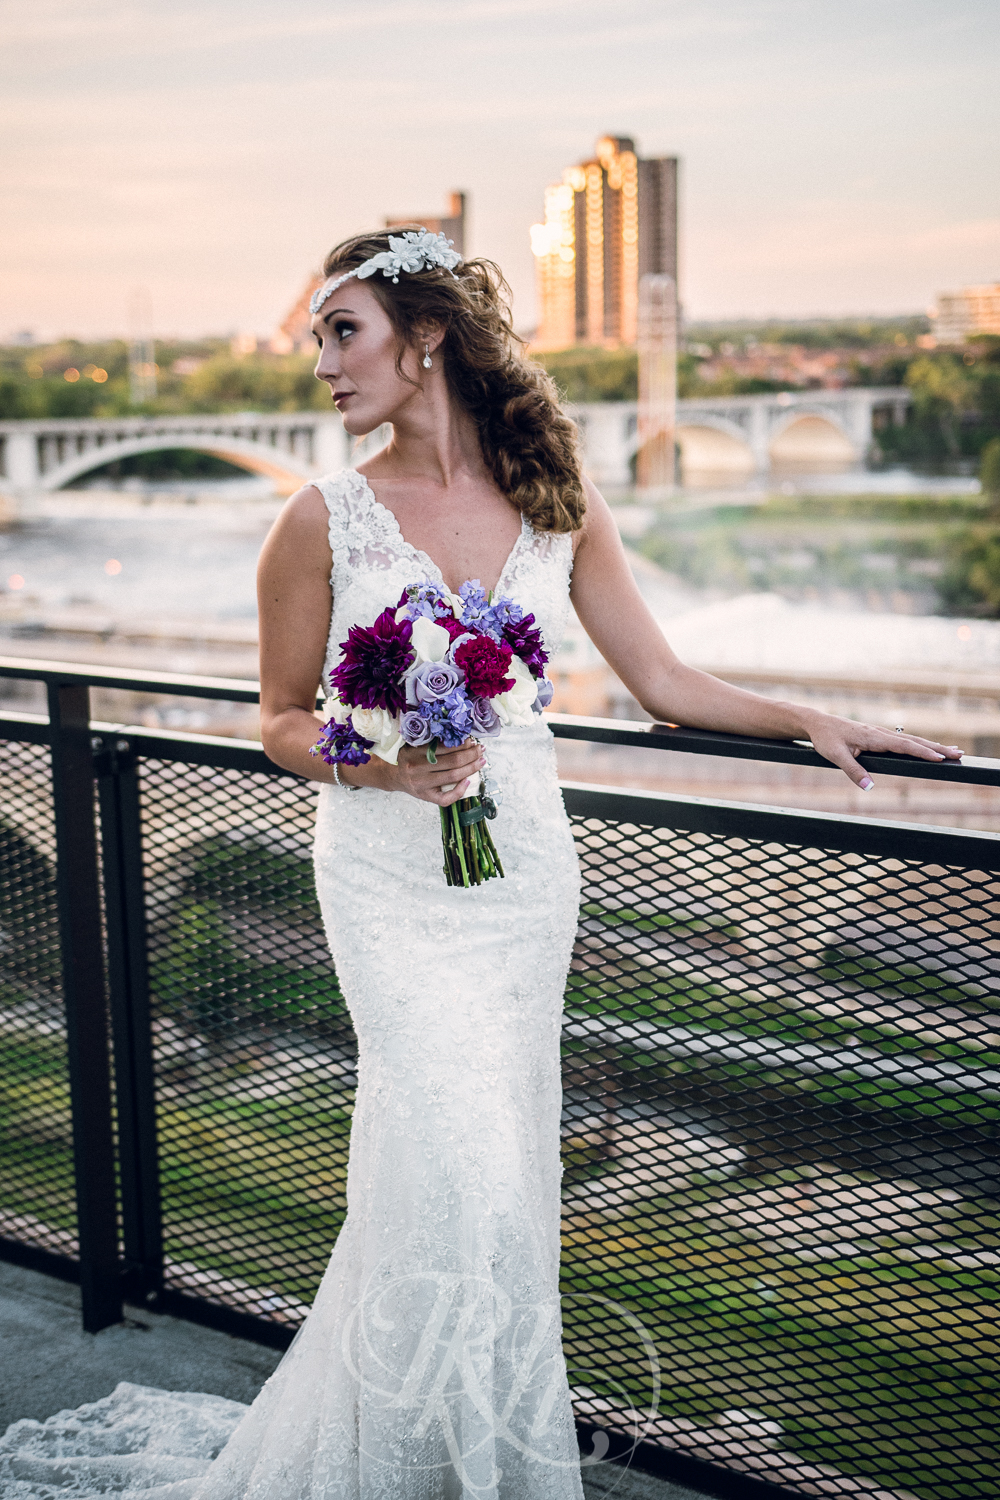 Brittany & Justin - Minnesota Wedding Photographer - Mill City Museum - RKH Images -31.jpg